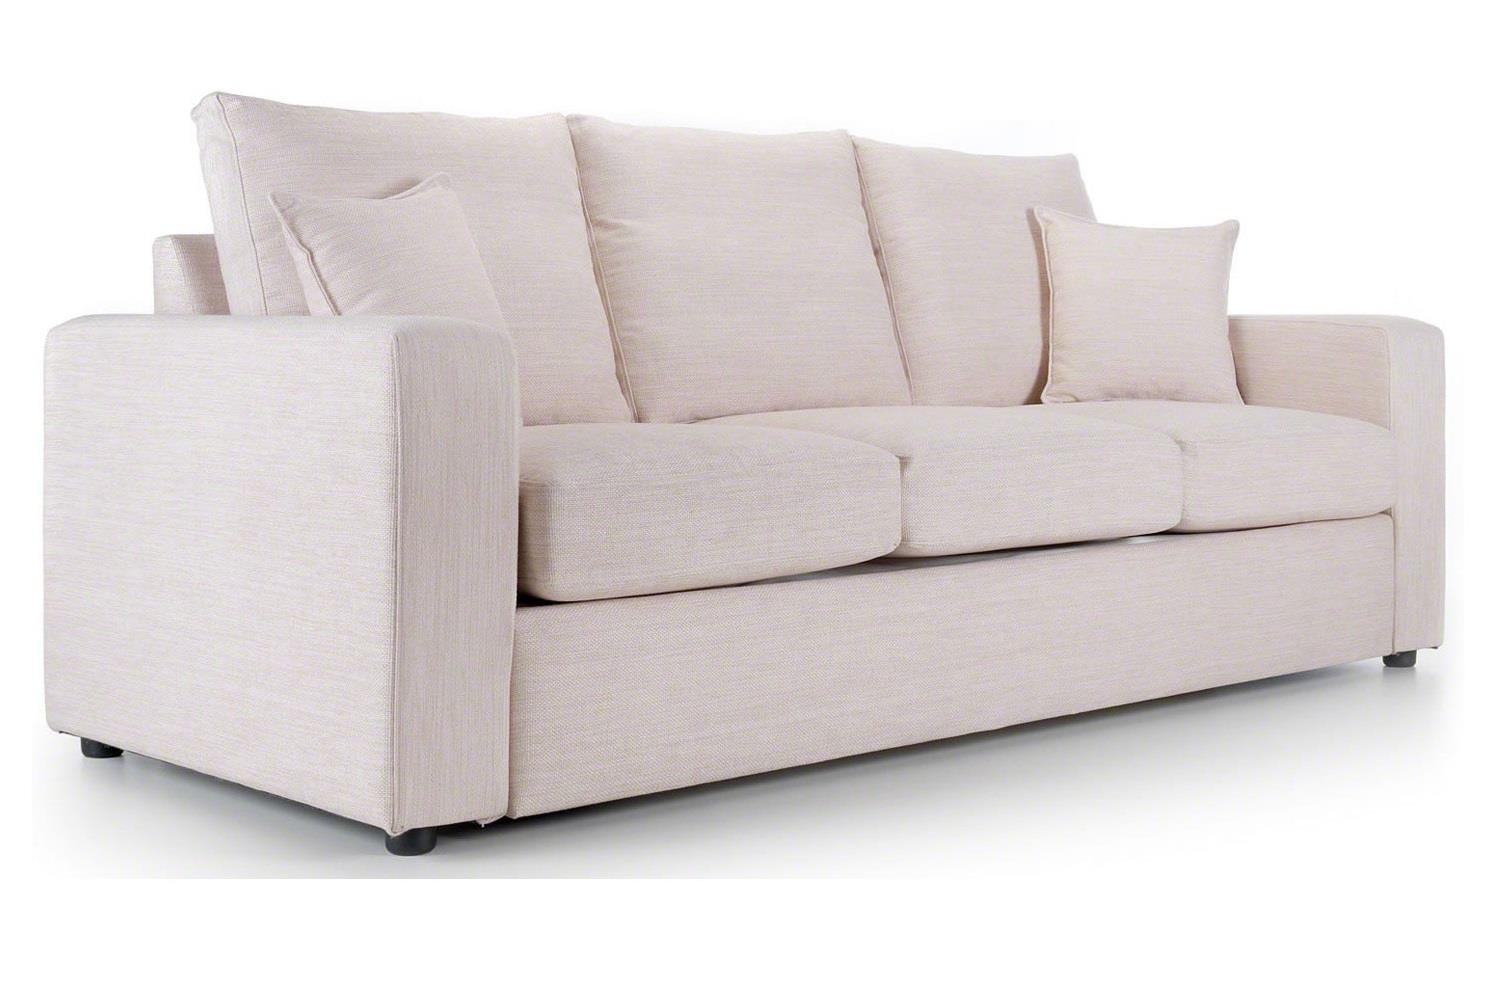 Camberwell Large Sofa Bed | Special Offer | Taupe